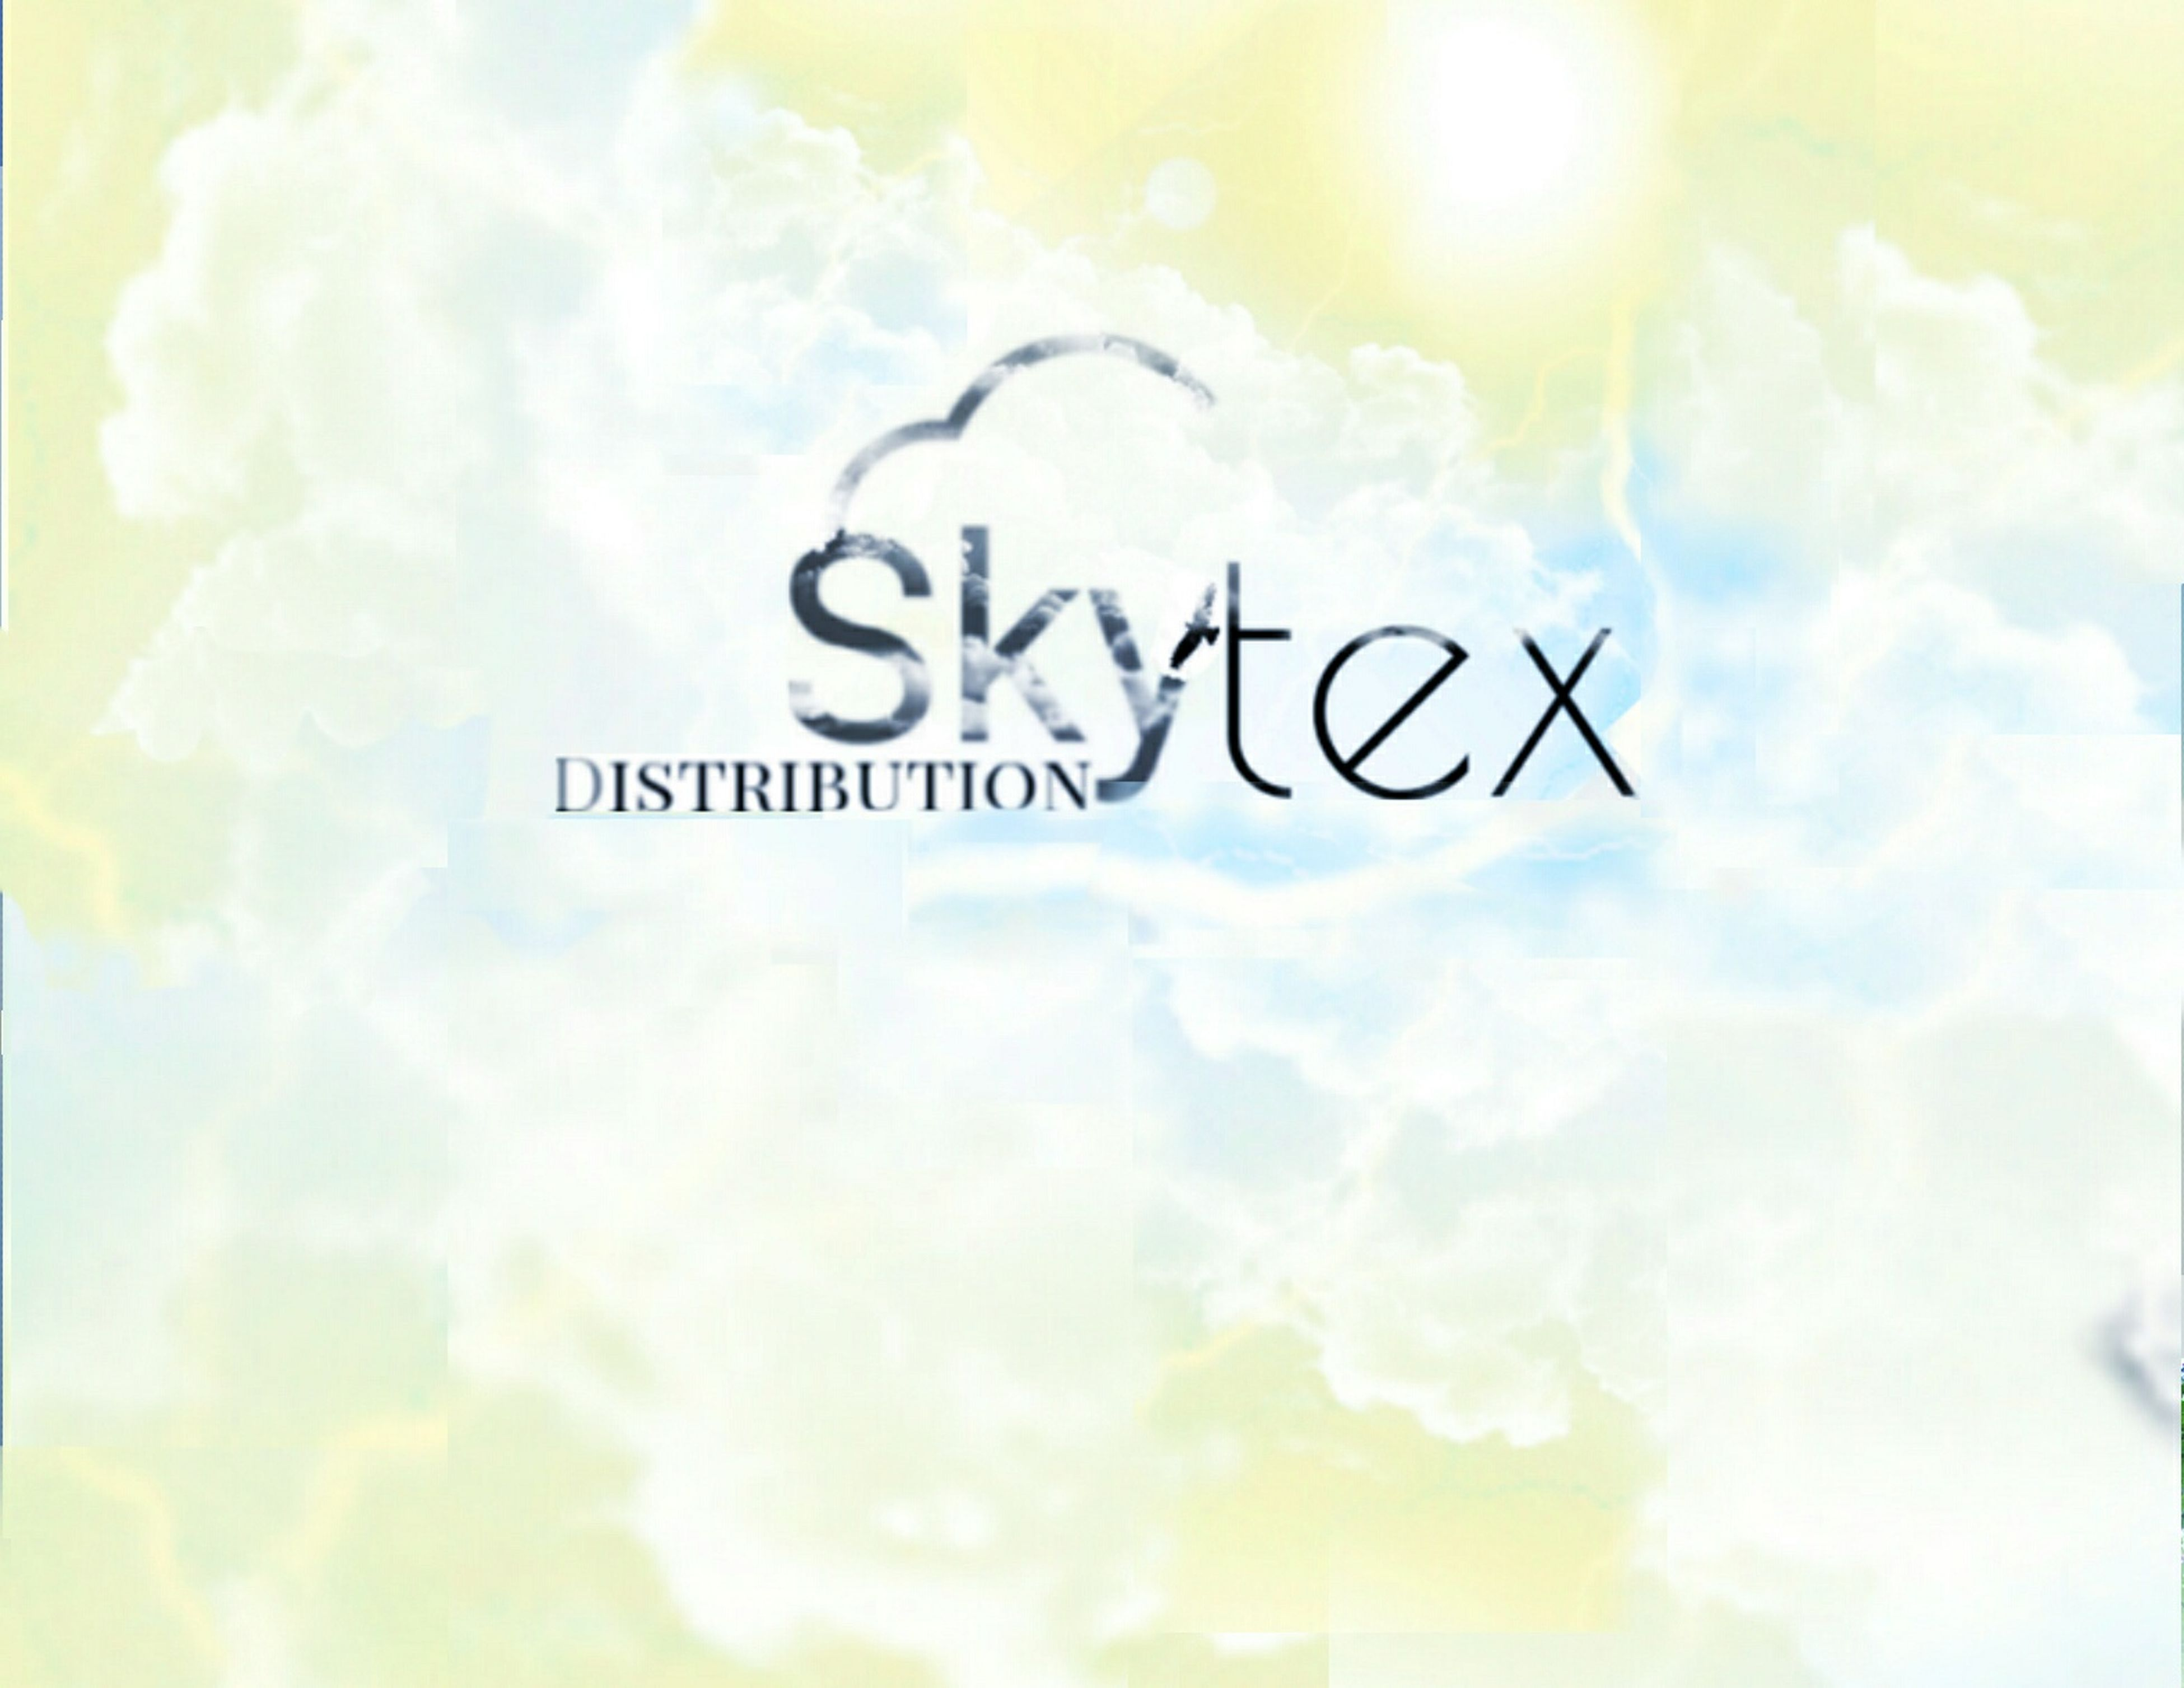 Distribution Skytex Is Solely Dedicated To Providing The Utmost Consideration In Every Aspect Of Our Dealings. Our Relentless Staff Precisely Believes That Our Success Is The Outcome Of Envisioning Not Only Our Clients Needs But Also Developing Well Thoug Communication Internet Message Cloud - Sky Announcement Message Global Communications Arts Culture And Entertainment Technology Business Information Medium No People Defocused Sky Outdoors Day #instahappy #funtimes #smiling #sohappy #goodmood #lovelife #20likes #excited @prilaga #happydays #laughing #fun #joy #haha #love #feelgoodphoto #prilaga #bestday #happyhappy #feelgood #goodday #enjoy #feliz #funny #happy #humor #laugh #smile #happyday #happier instagood #cheermeup #sadness #nothappy #stressed @prilaga #boring #crying #nolove #me #cry #l4l #sad #annoyed #hate #help #hope #mood #sadday #badmood #prilaga #depressed #alone #bored #insta #moods #tears #upset #lifesucks #goingmental #instasad boringday Romance #backintheday #instamemory #instamoment #throwbackthursdays #throwbackthursdayy #reminisce #instatb #photooftheday @prilaga #reminiscing #tb #old #tbt #throwbackthursdayyy #back #best #cute #life #miss #tbts #throwbackthursday #throwback #memories Nofilter #instadaily #tweegram #inspire #goodvibes #inspiremyinstagram #photooftheday @prilaga #positivethinking #tbt #life #like #love #song #true #word #quotes #instagramhub #prilaga #comments #funny #igers #quote #thehappynow #peoplescreatives #quoteof Yogaaddict #yogainspiration #yogachallenge @prilaga #meditation #yogapractice #health #yogafit #yogafun #yogamom #fit #life #pose #yoga #yogaaday #yogagirl #yogagram #yogalife #yogalove #yogapose #yogateacher #yogajourney #yogaeverywhere #prilaga #motivat First Eyeem Photo